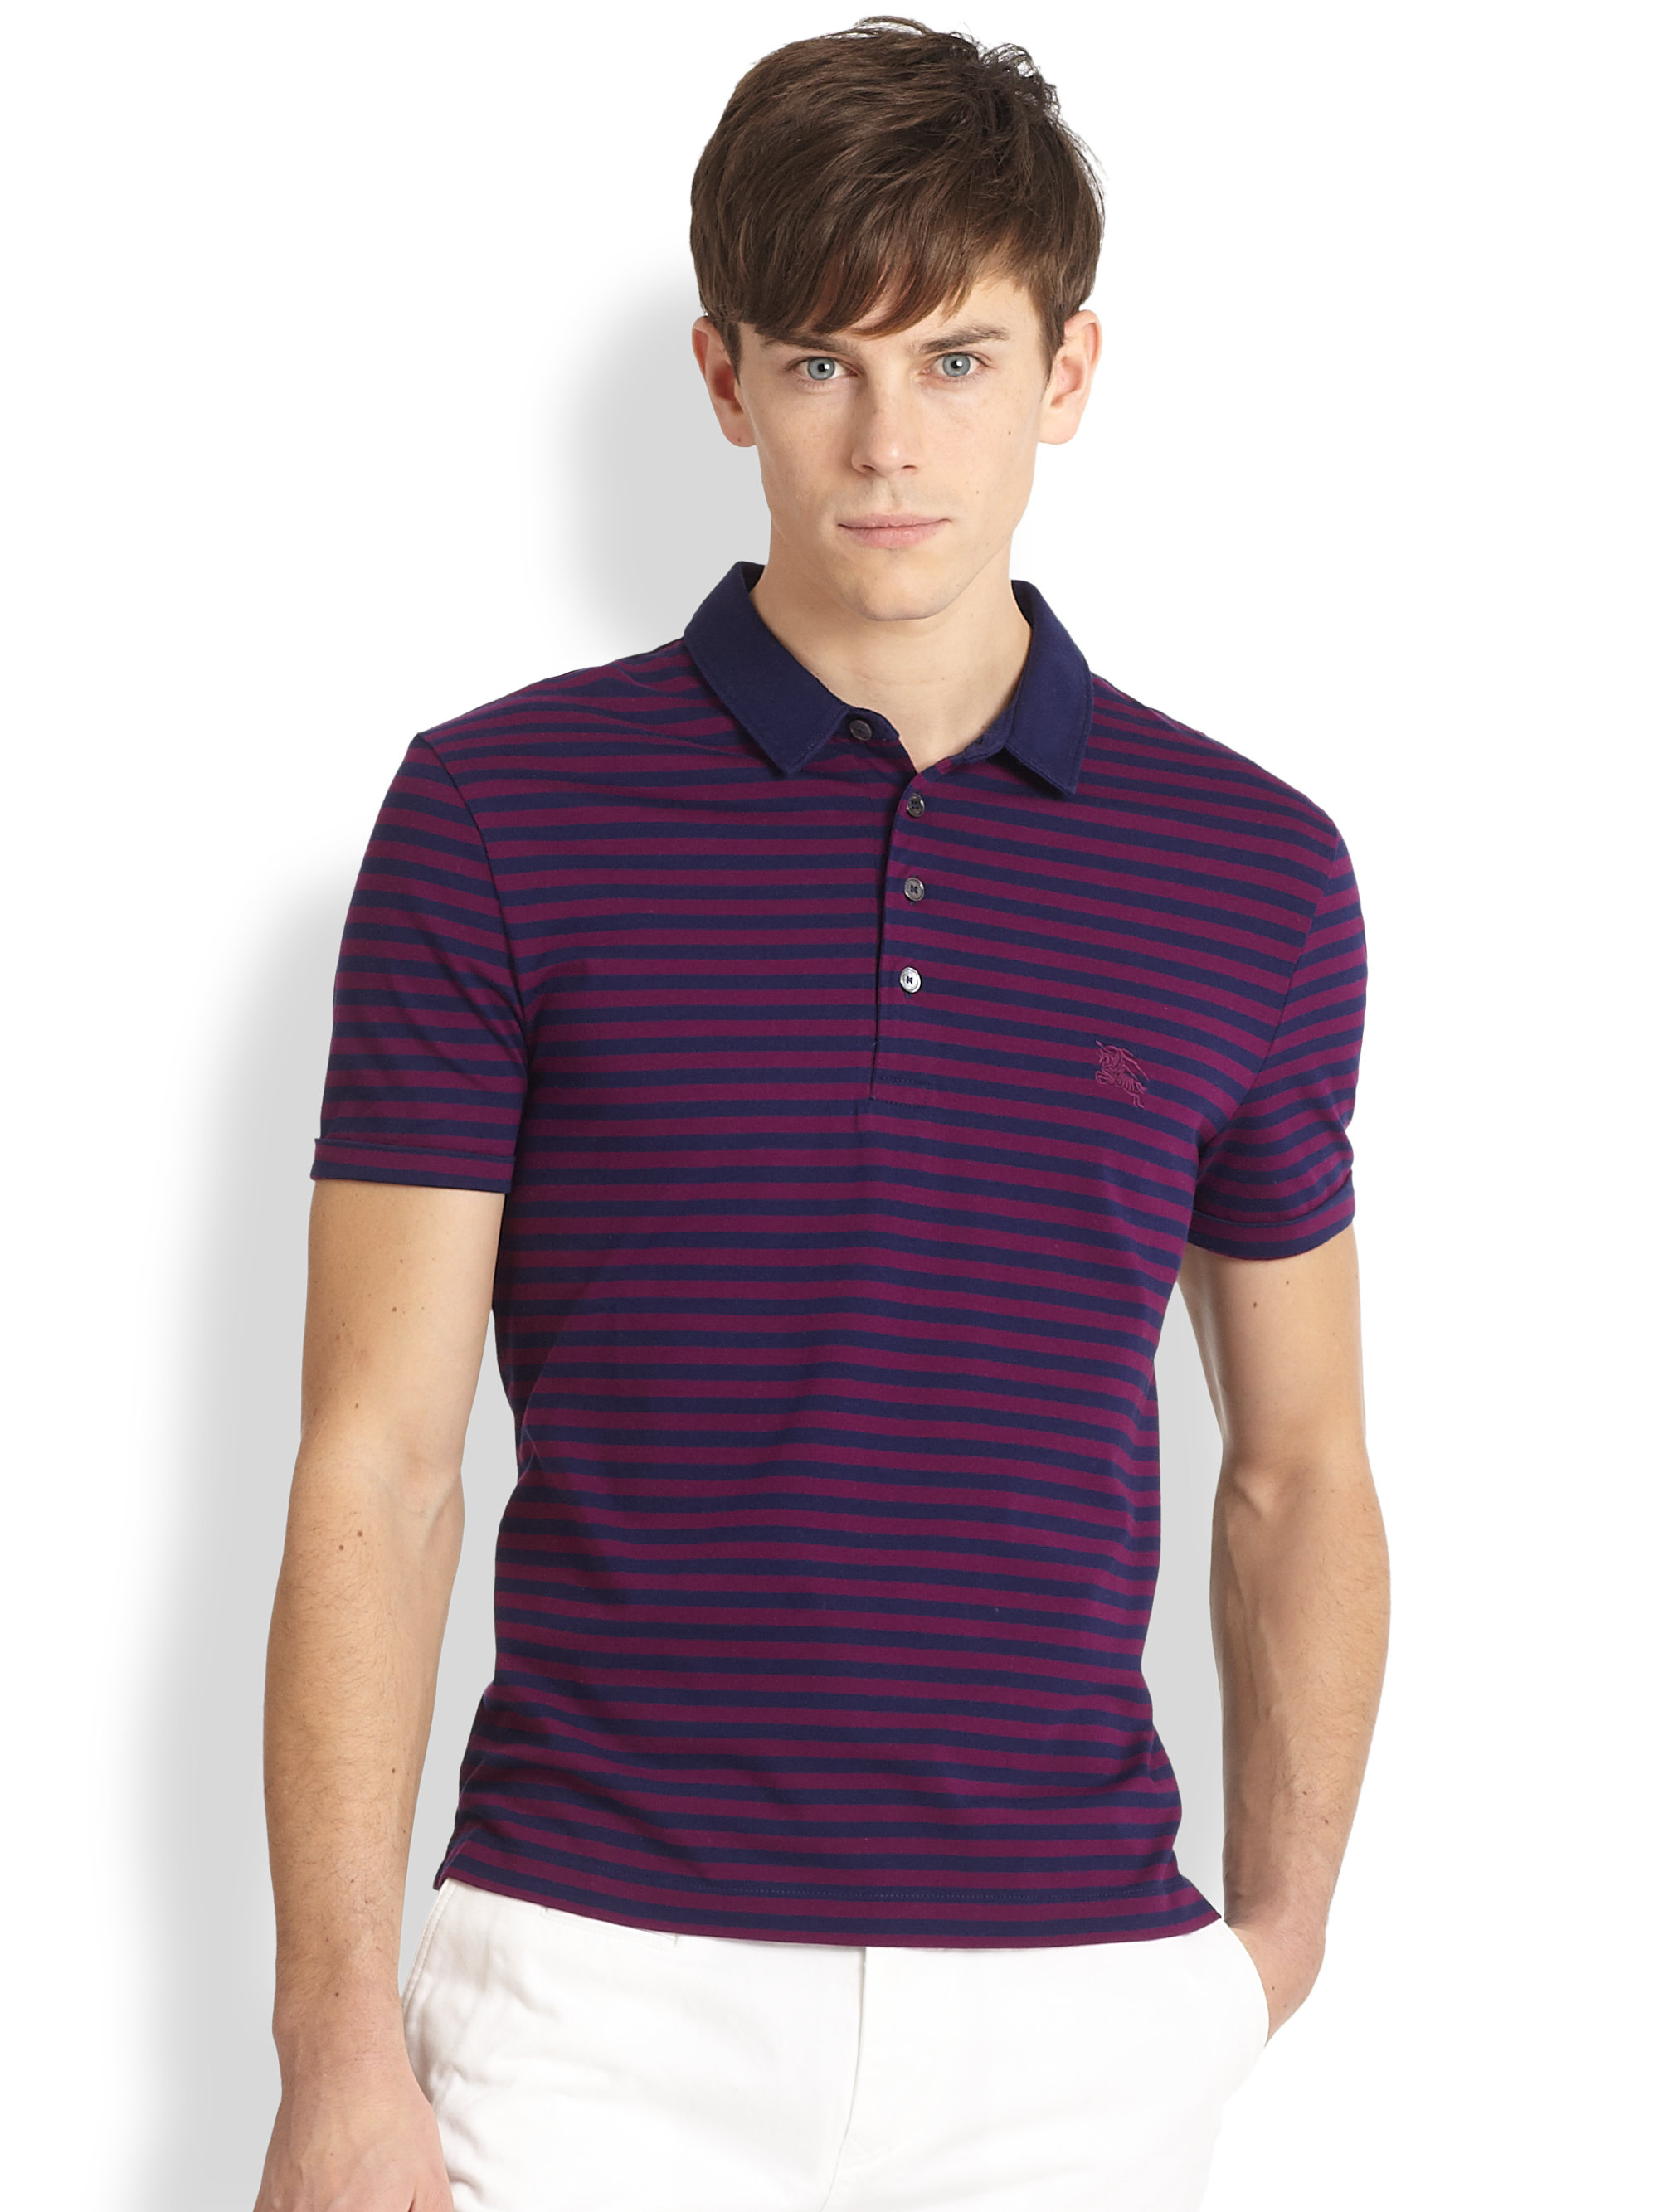 Burberry Brit Berner Striped Polo Shirt In Purple For Men